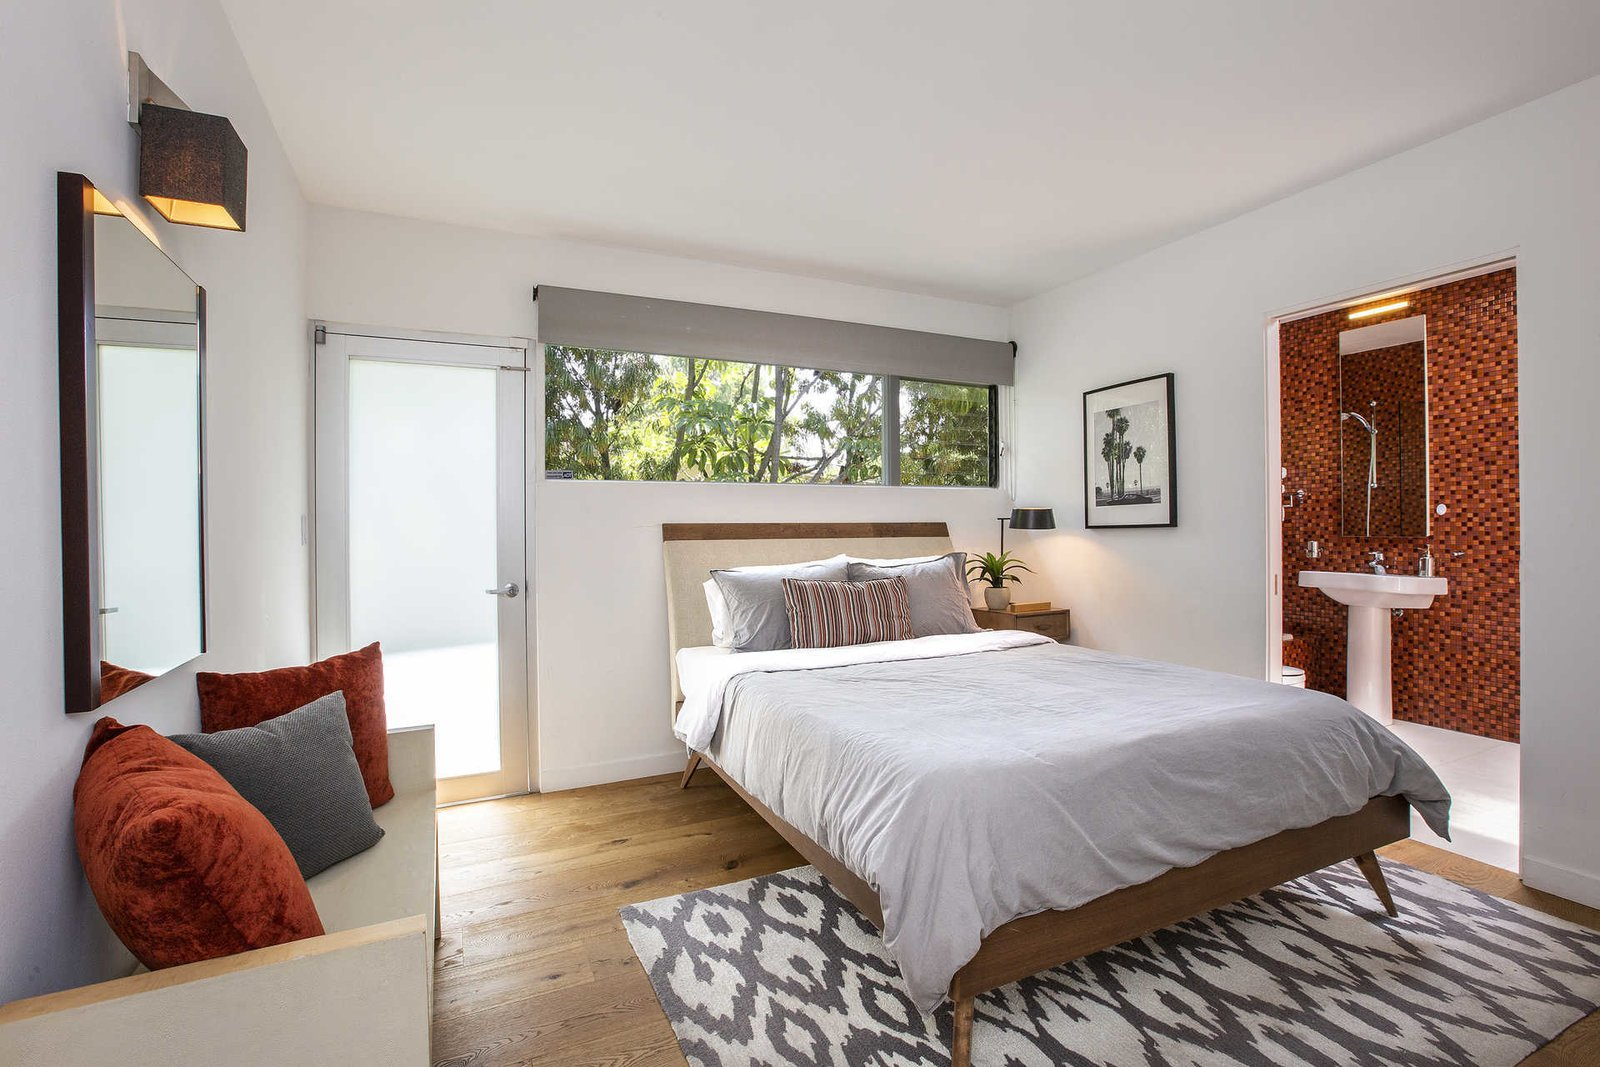 Bedroom, Medium Hardwood Floor, Bed, Wall Lighting, Night Stands, Bench, Table Lighting, and Rug Floor This bedroom features a beautifully tiled bathroom.  Best Photos from Fifty Shades Actor Jamie Dornan Lists His Midcentury Retreat at $3.2M